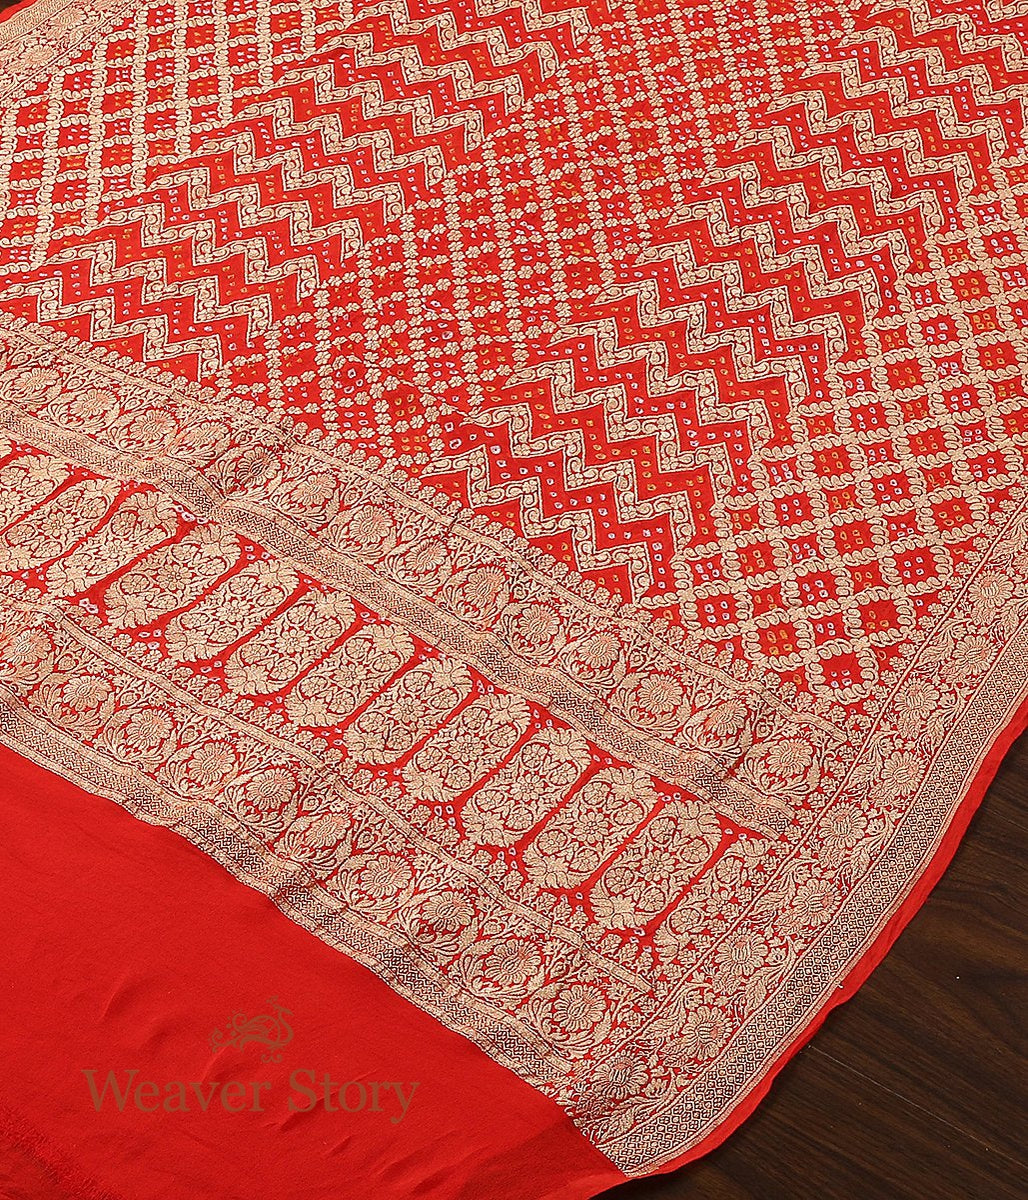 Handwoven Banarasi Bandhani Georgette Dupatta in Orange